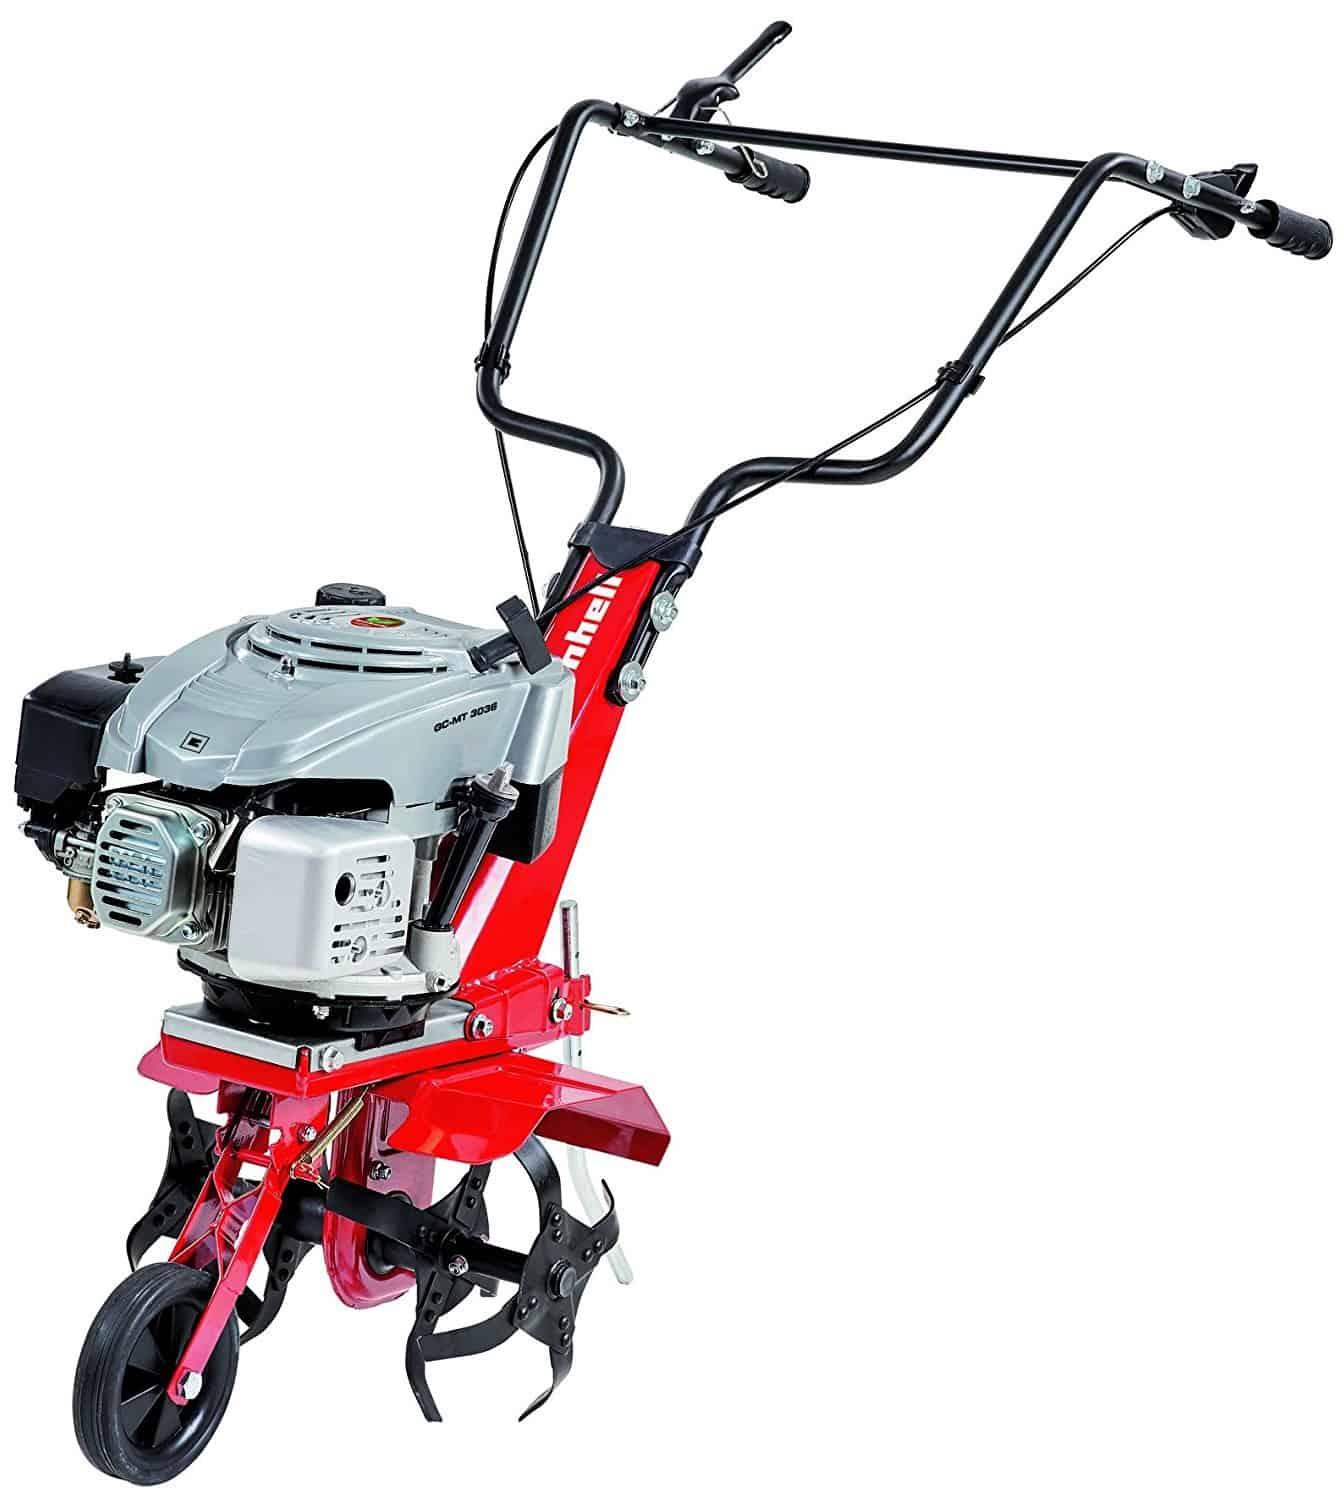 Best Rotavator for Vegetable Patches – Einhell